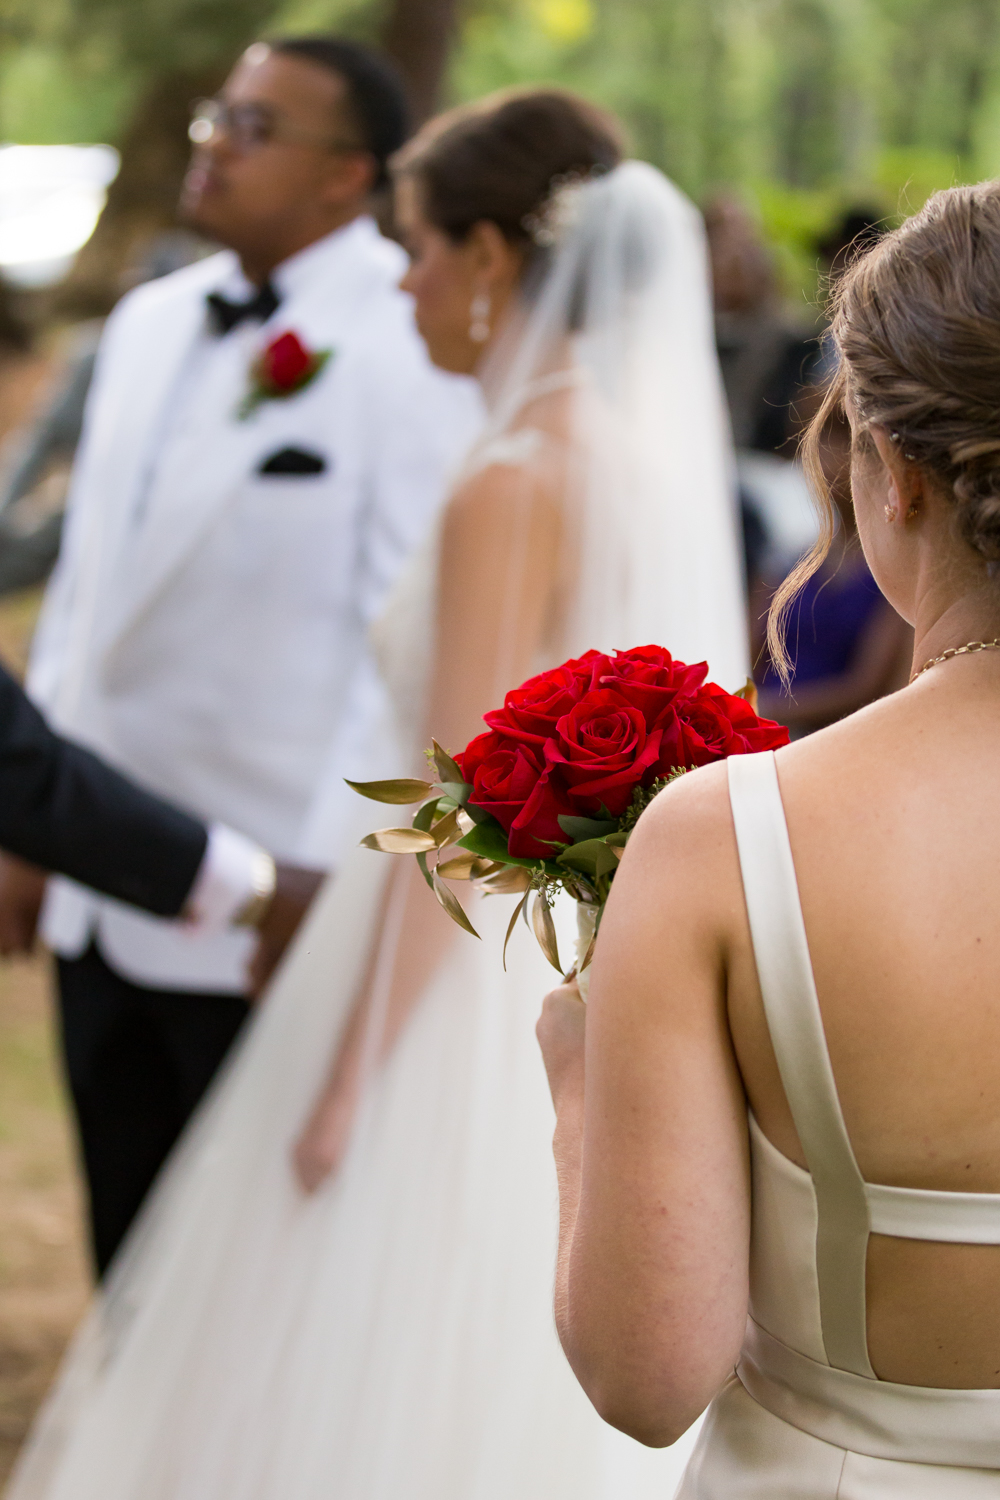 Photo of bridesmaid holding red rose bouquet with bride and groom in the background